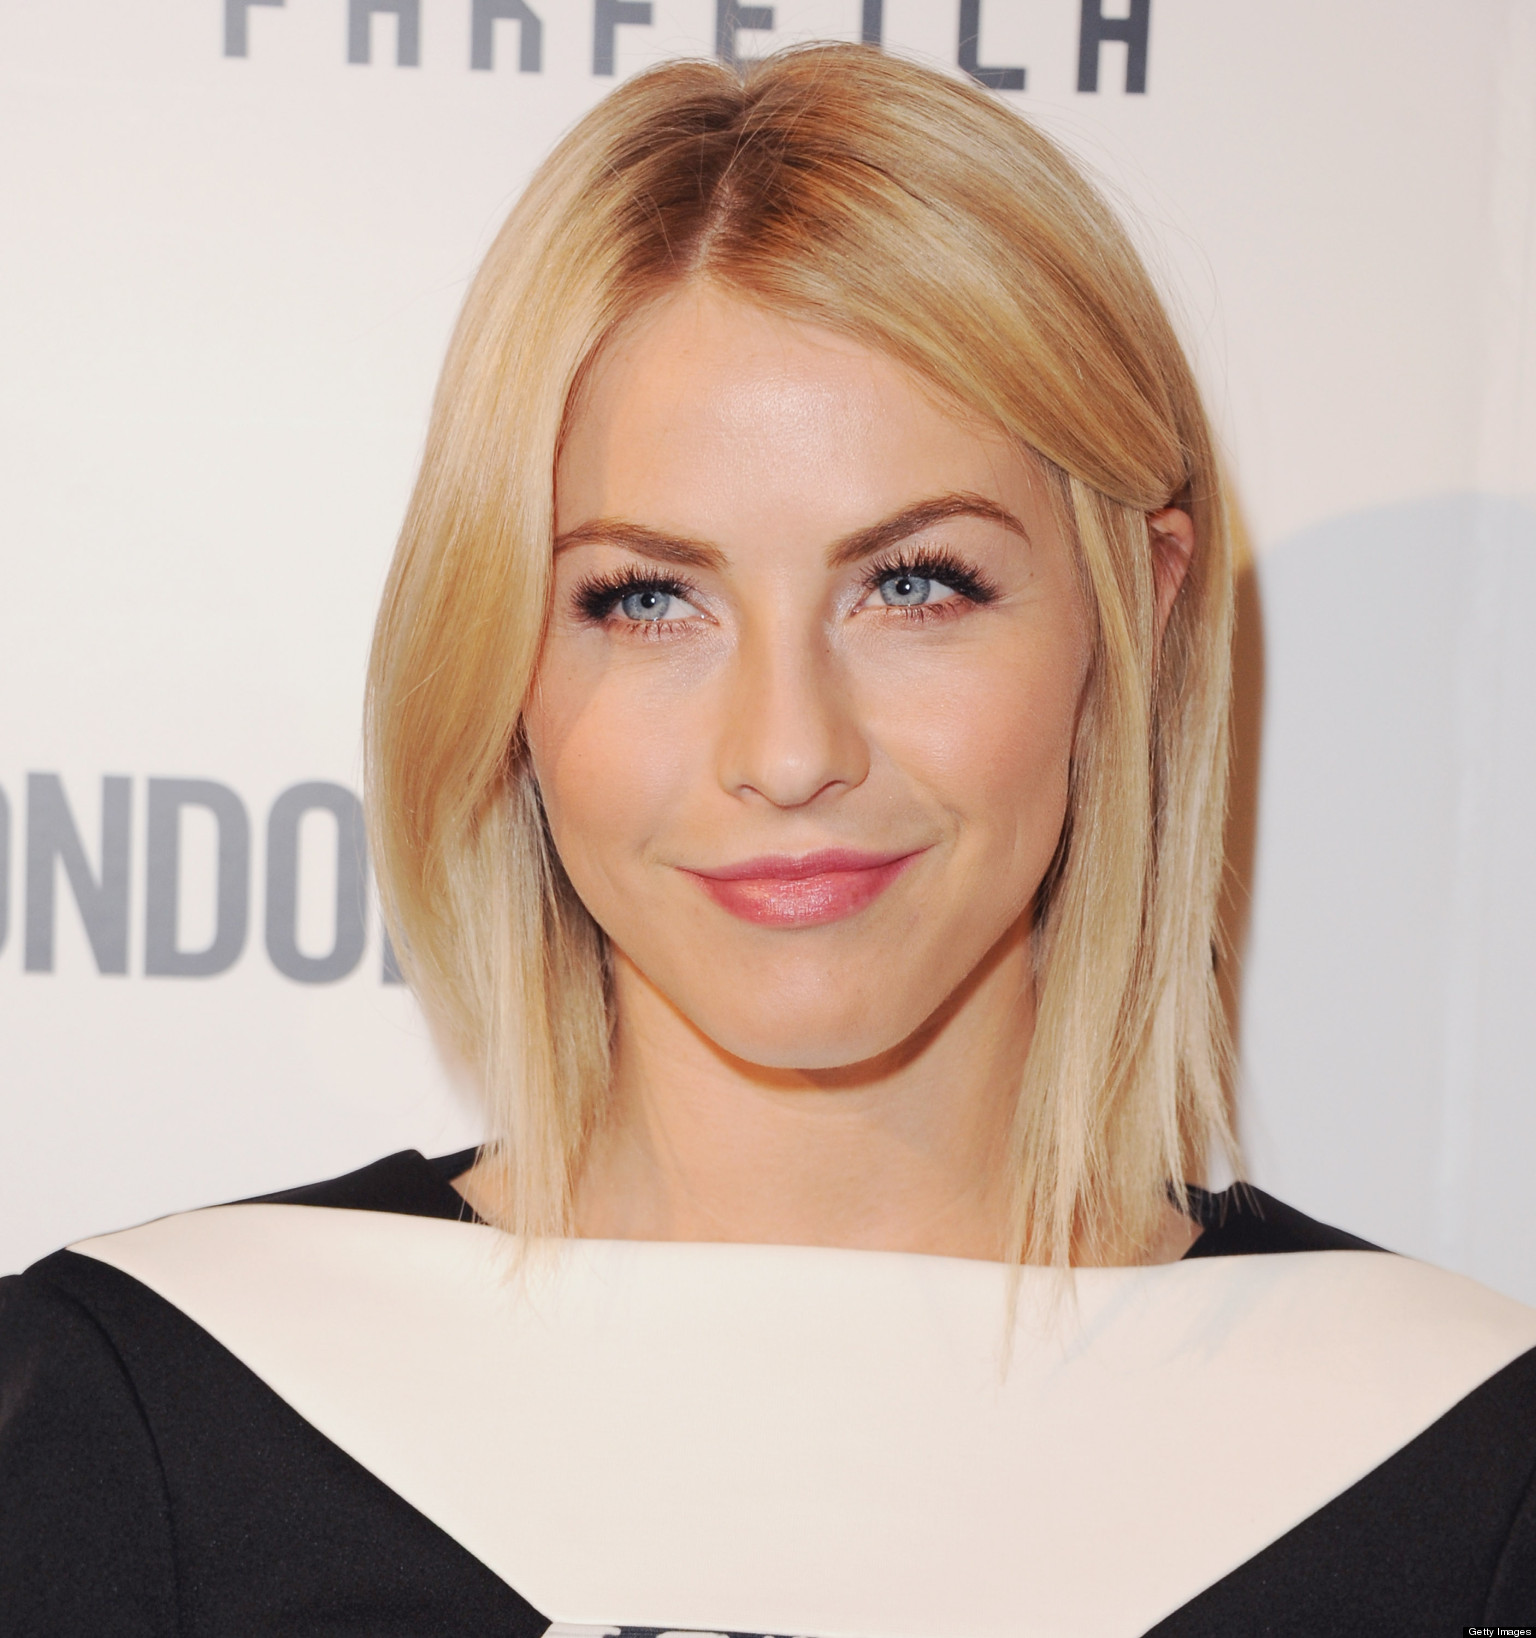 Julianne Hough S Single Style Must Give Ex Ryan Seacrest